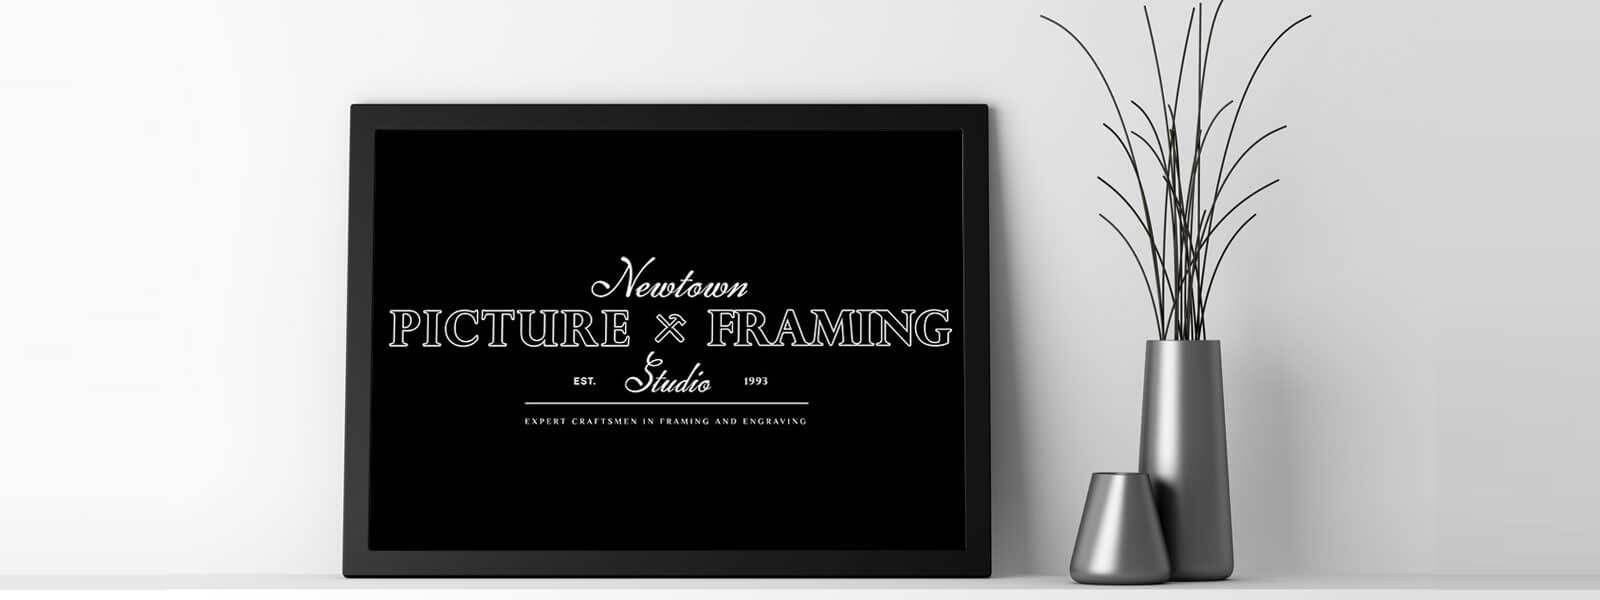 a framed logo of Newtown Picture Framing beside an elegant steel vase